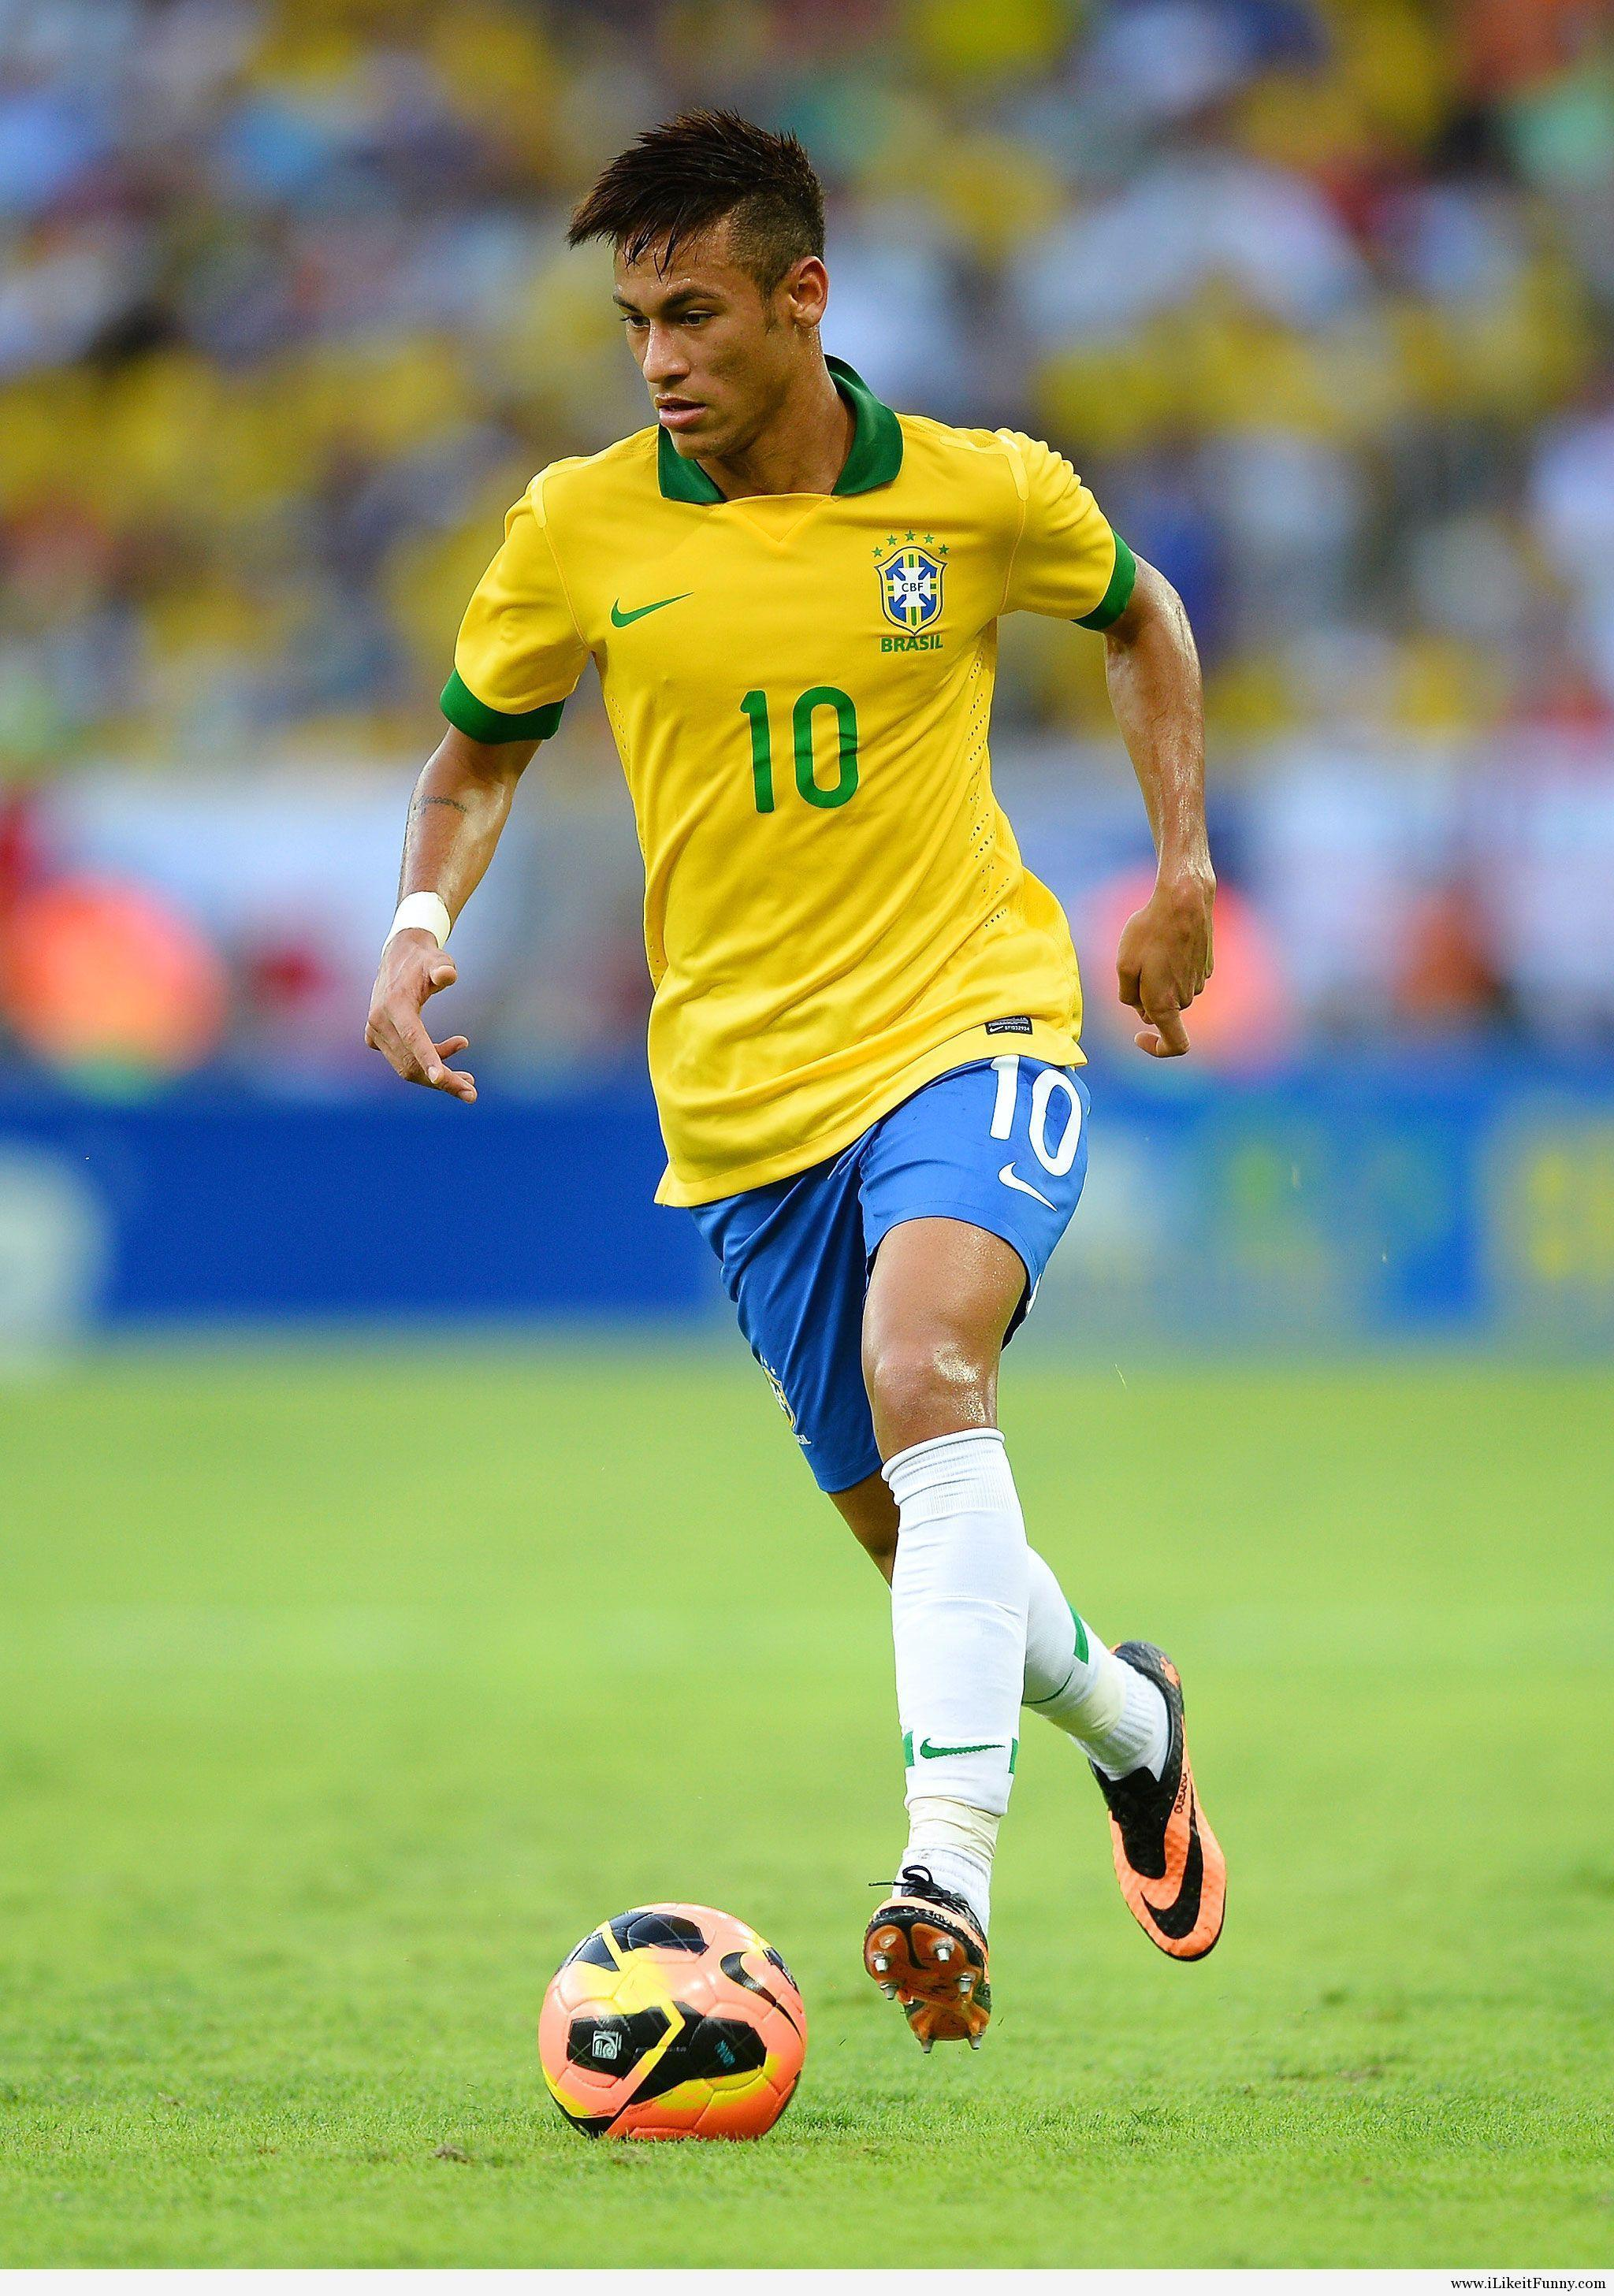 brazil neymar wallpaper 2014 - photo #25